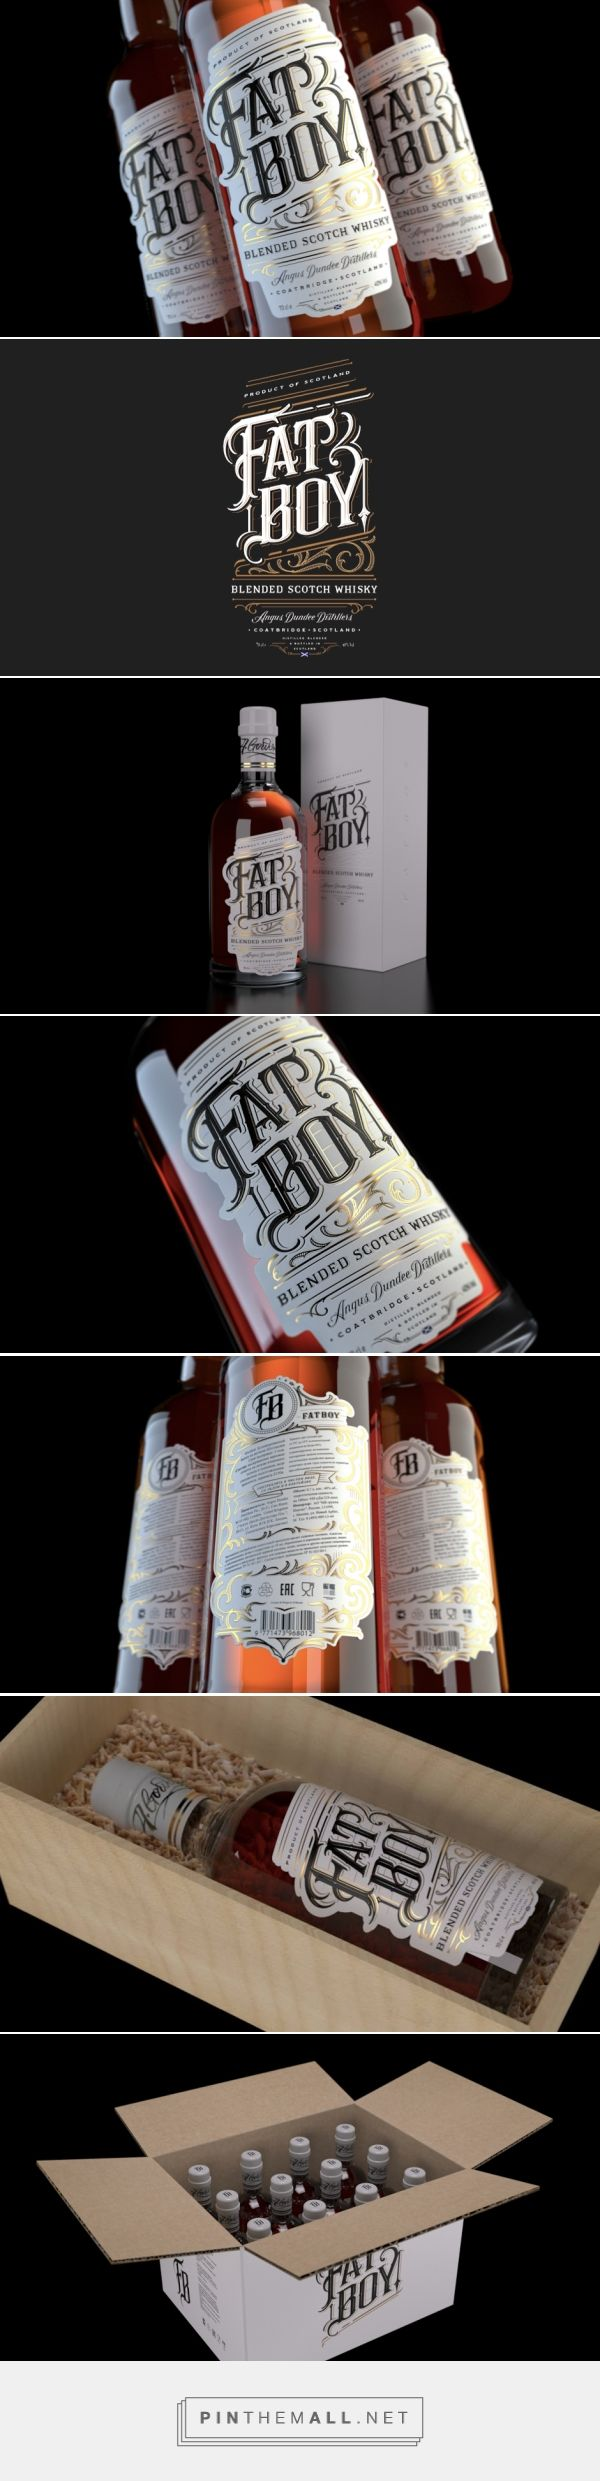 Fat Boy #Whiskey #label designed by Deluxe Interactive Moscow (#Russia) - http://www.packagingoftheworld.com/2016/03/fat-boy-whiskey.html